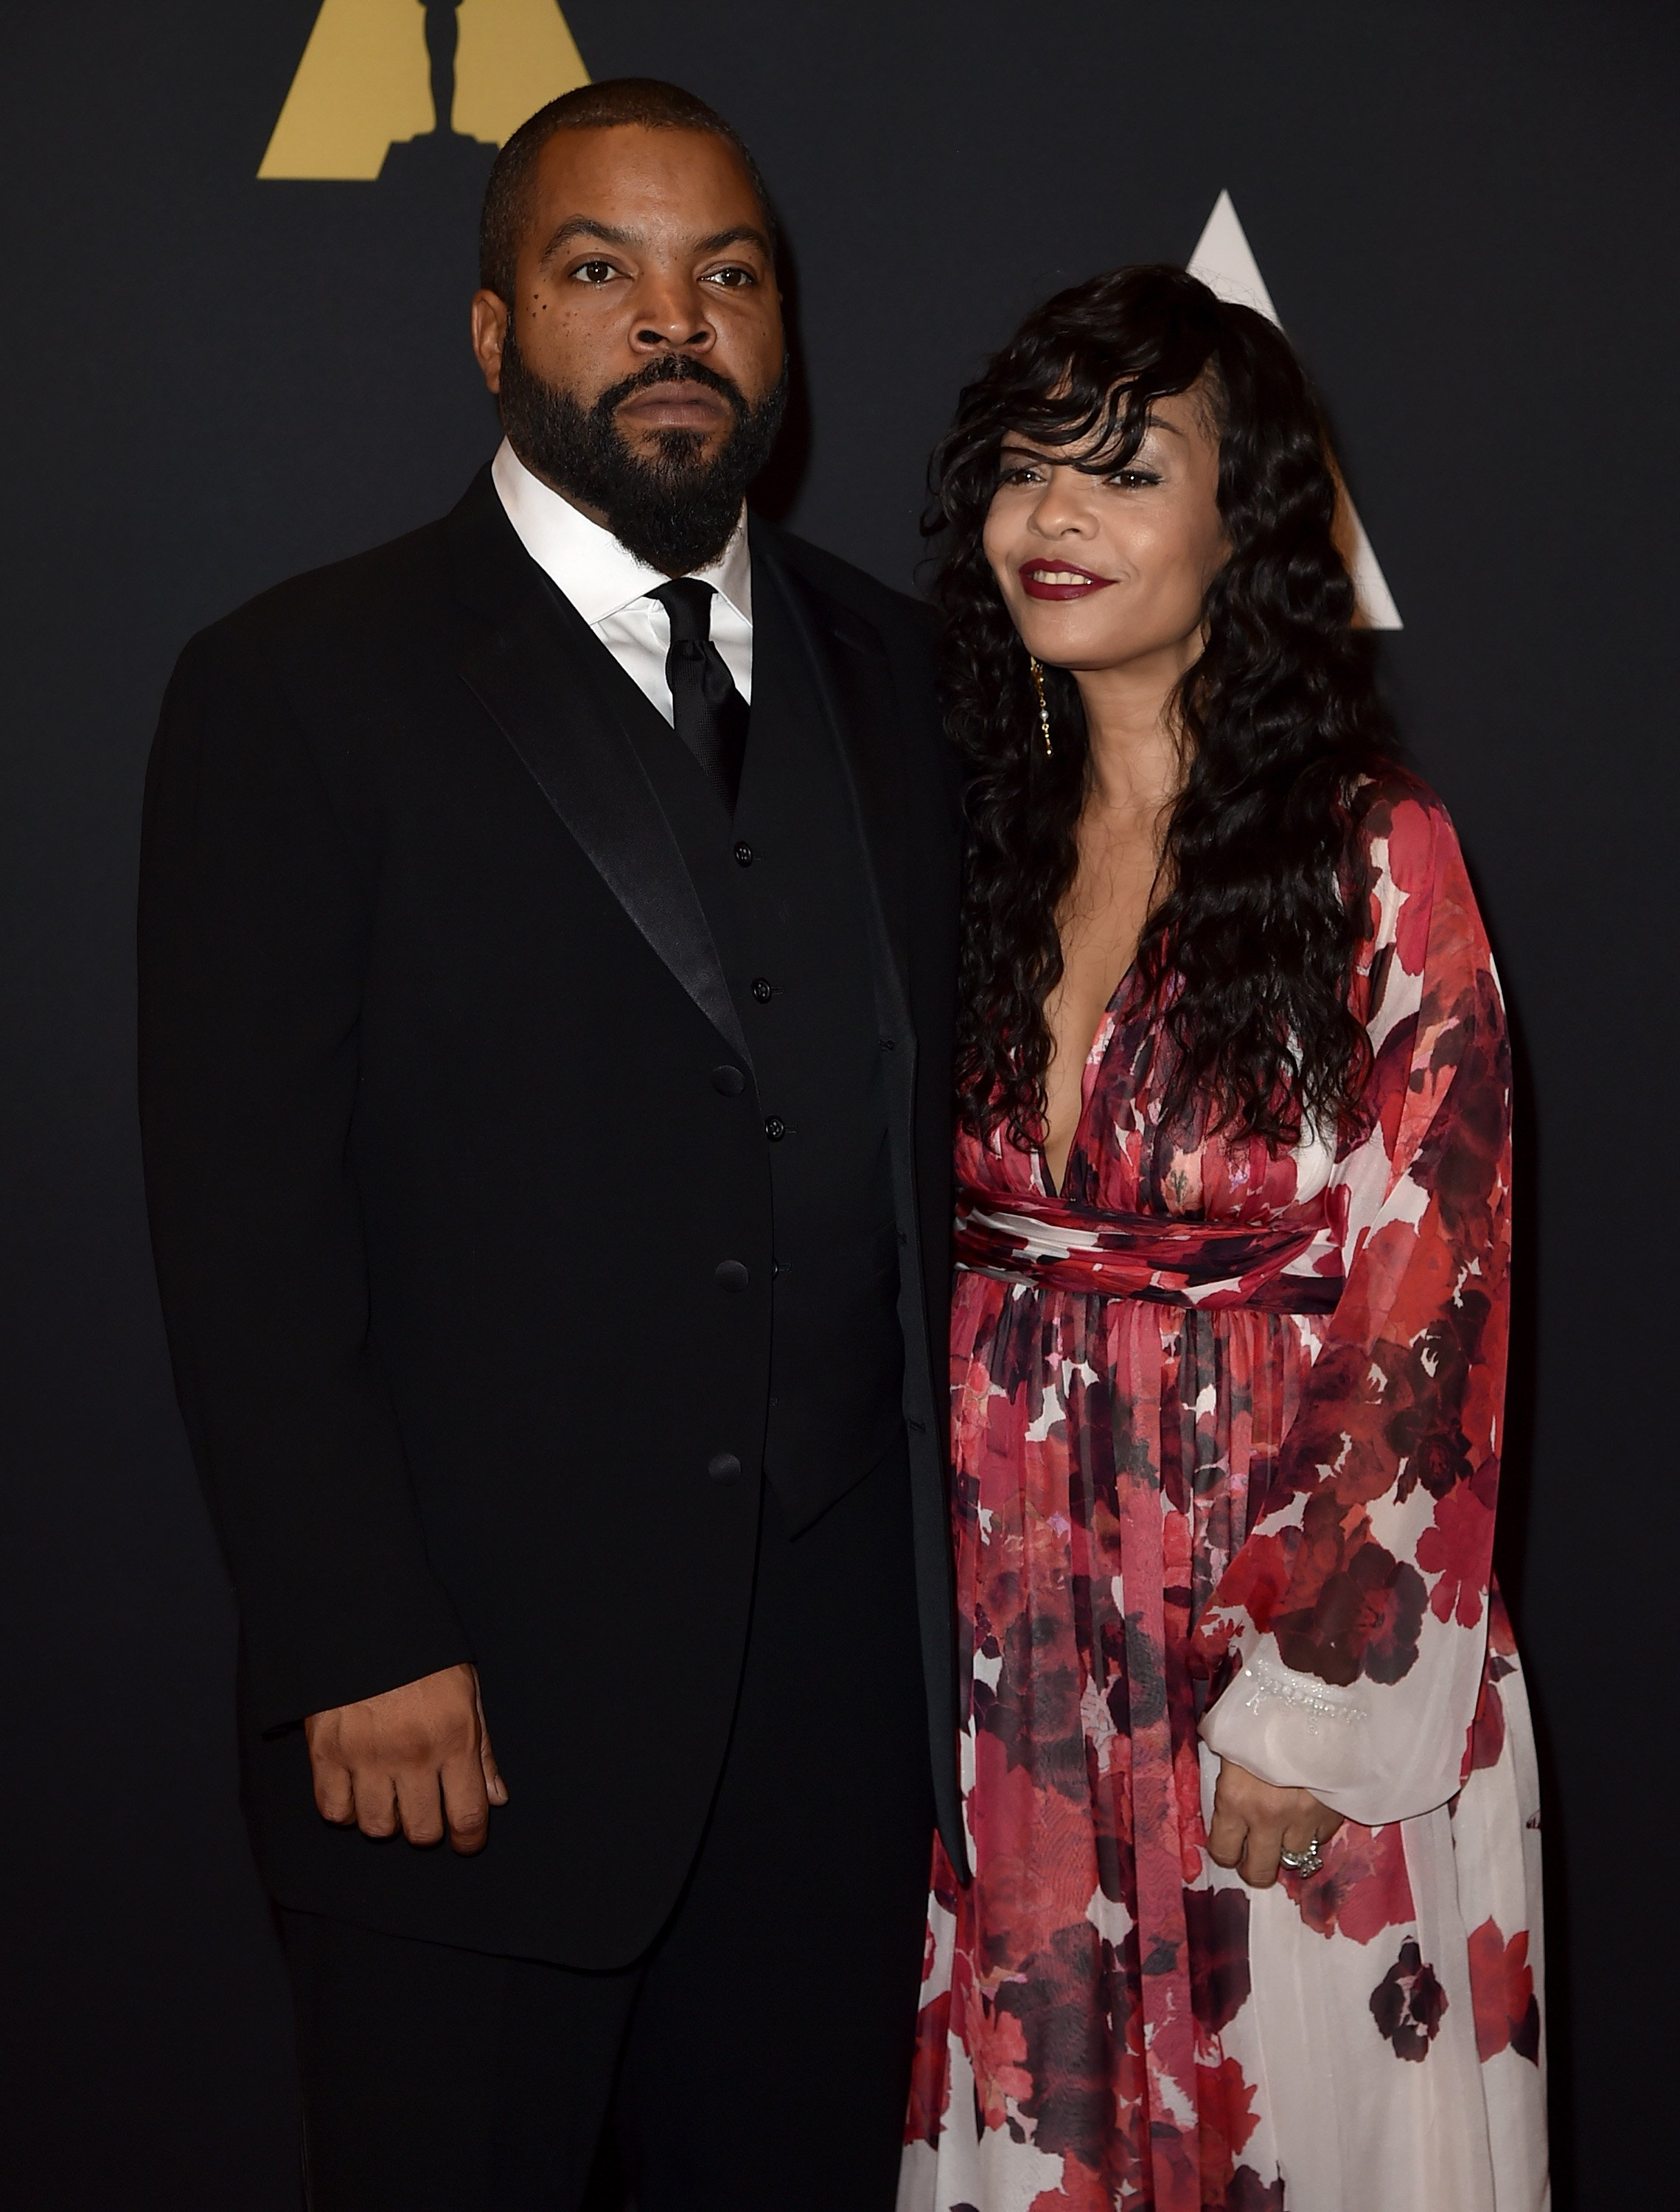 Ice Cube and Kimberly Woodruff at Hollywood & Highland Center on November 14, 2015 in Hollywood, California | Source: Getty Images/Global Images Ukraine